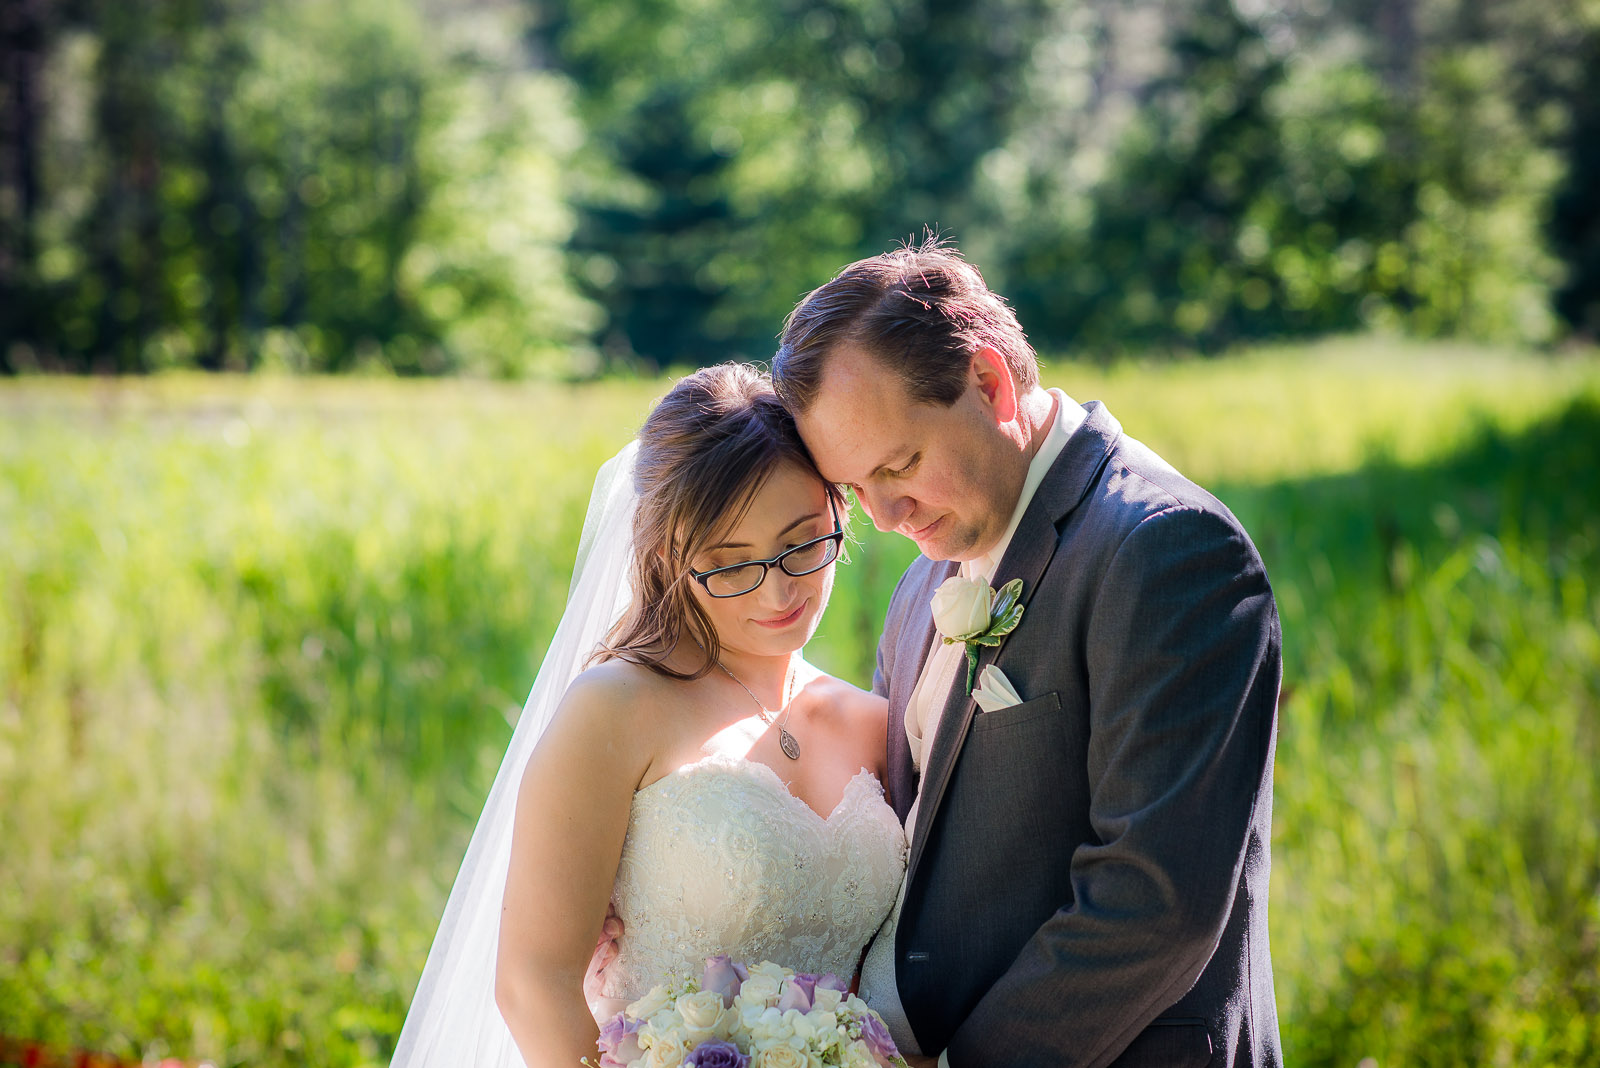 Eric_and_Christy_Photography_Blog_Julie_Adam_Wedding-33